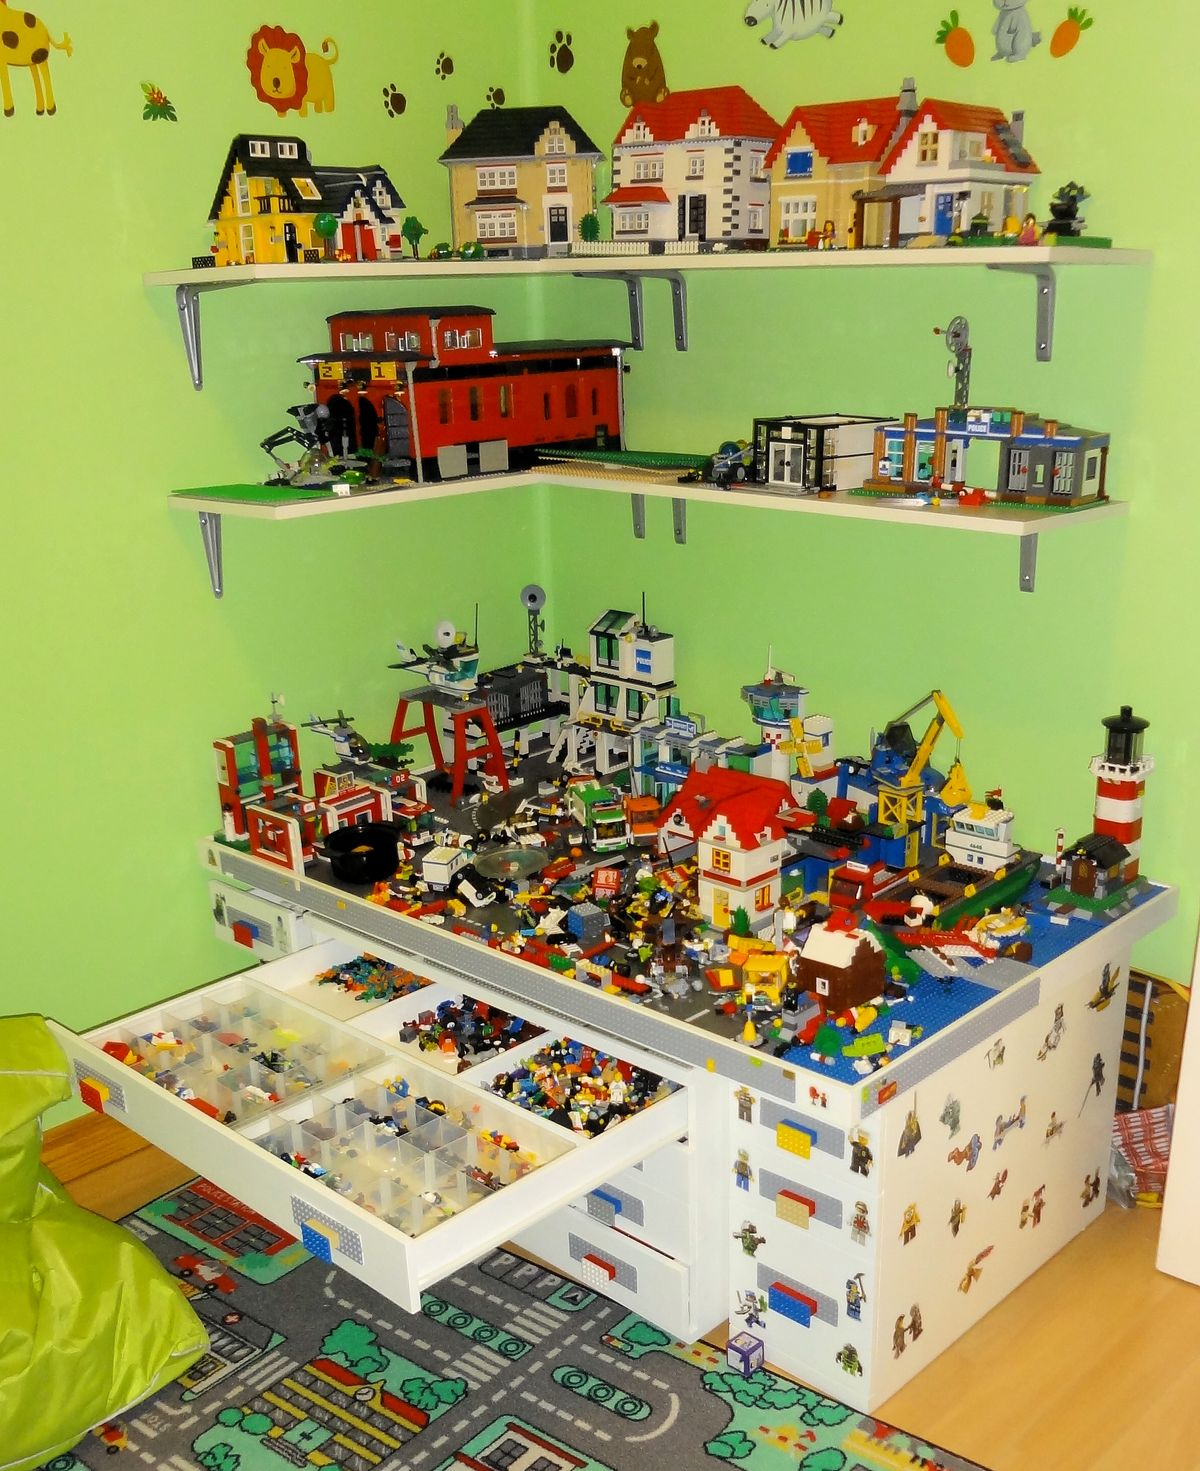 1000 images about lego table on pinterest lego table diy lego table and lego. Black Bedroom Furniture Sets. Home Design Ideas